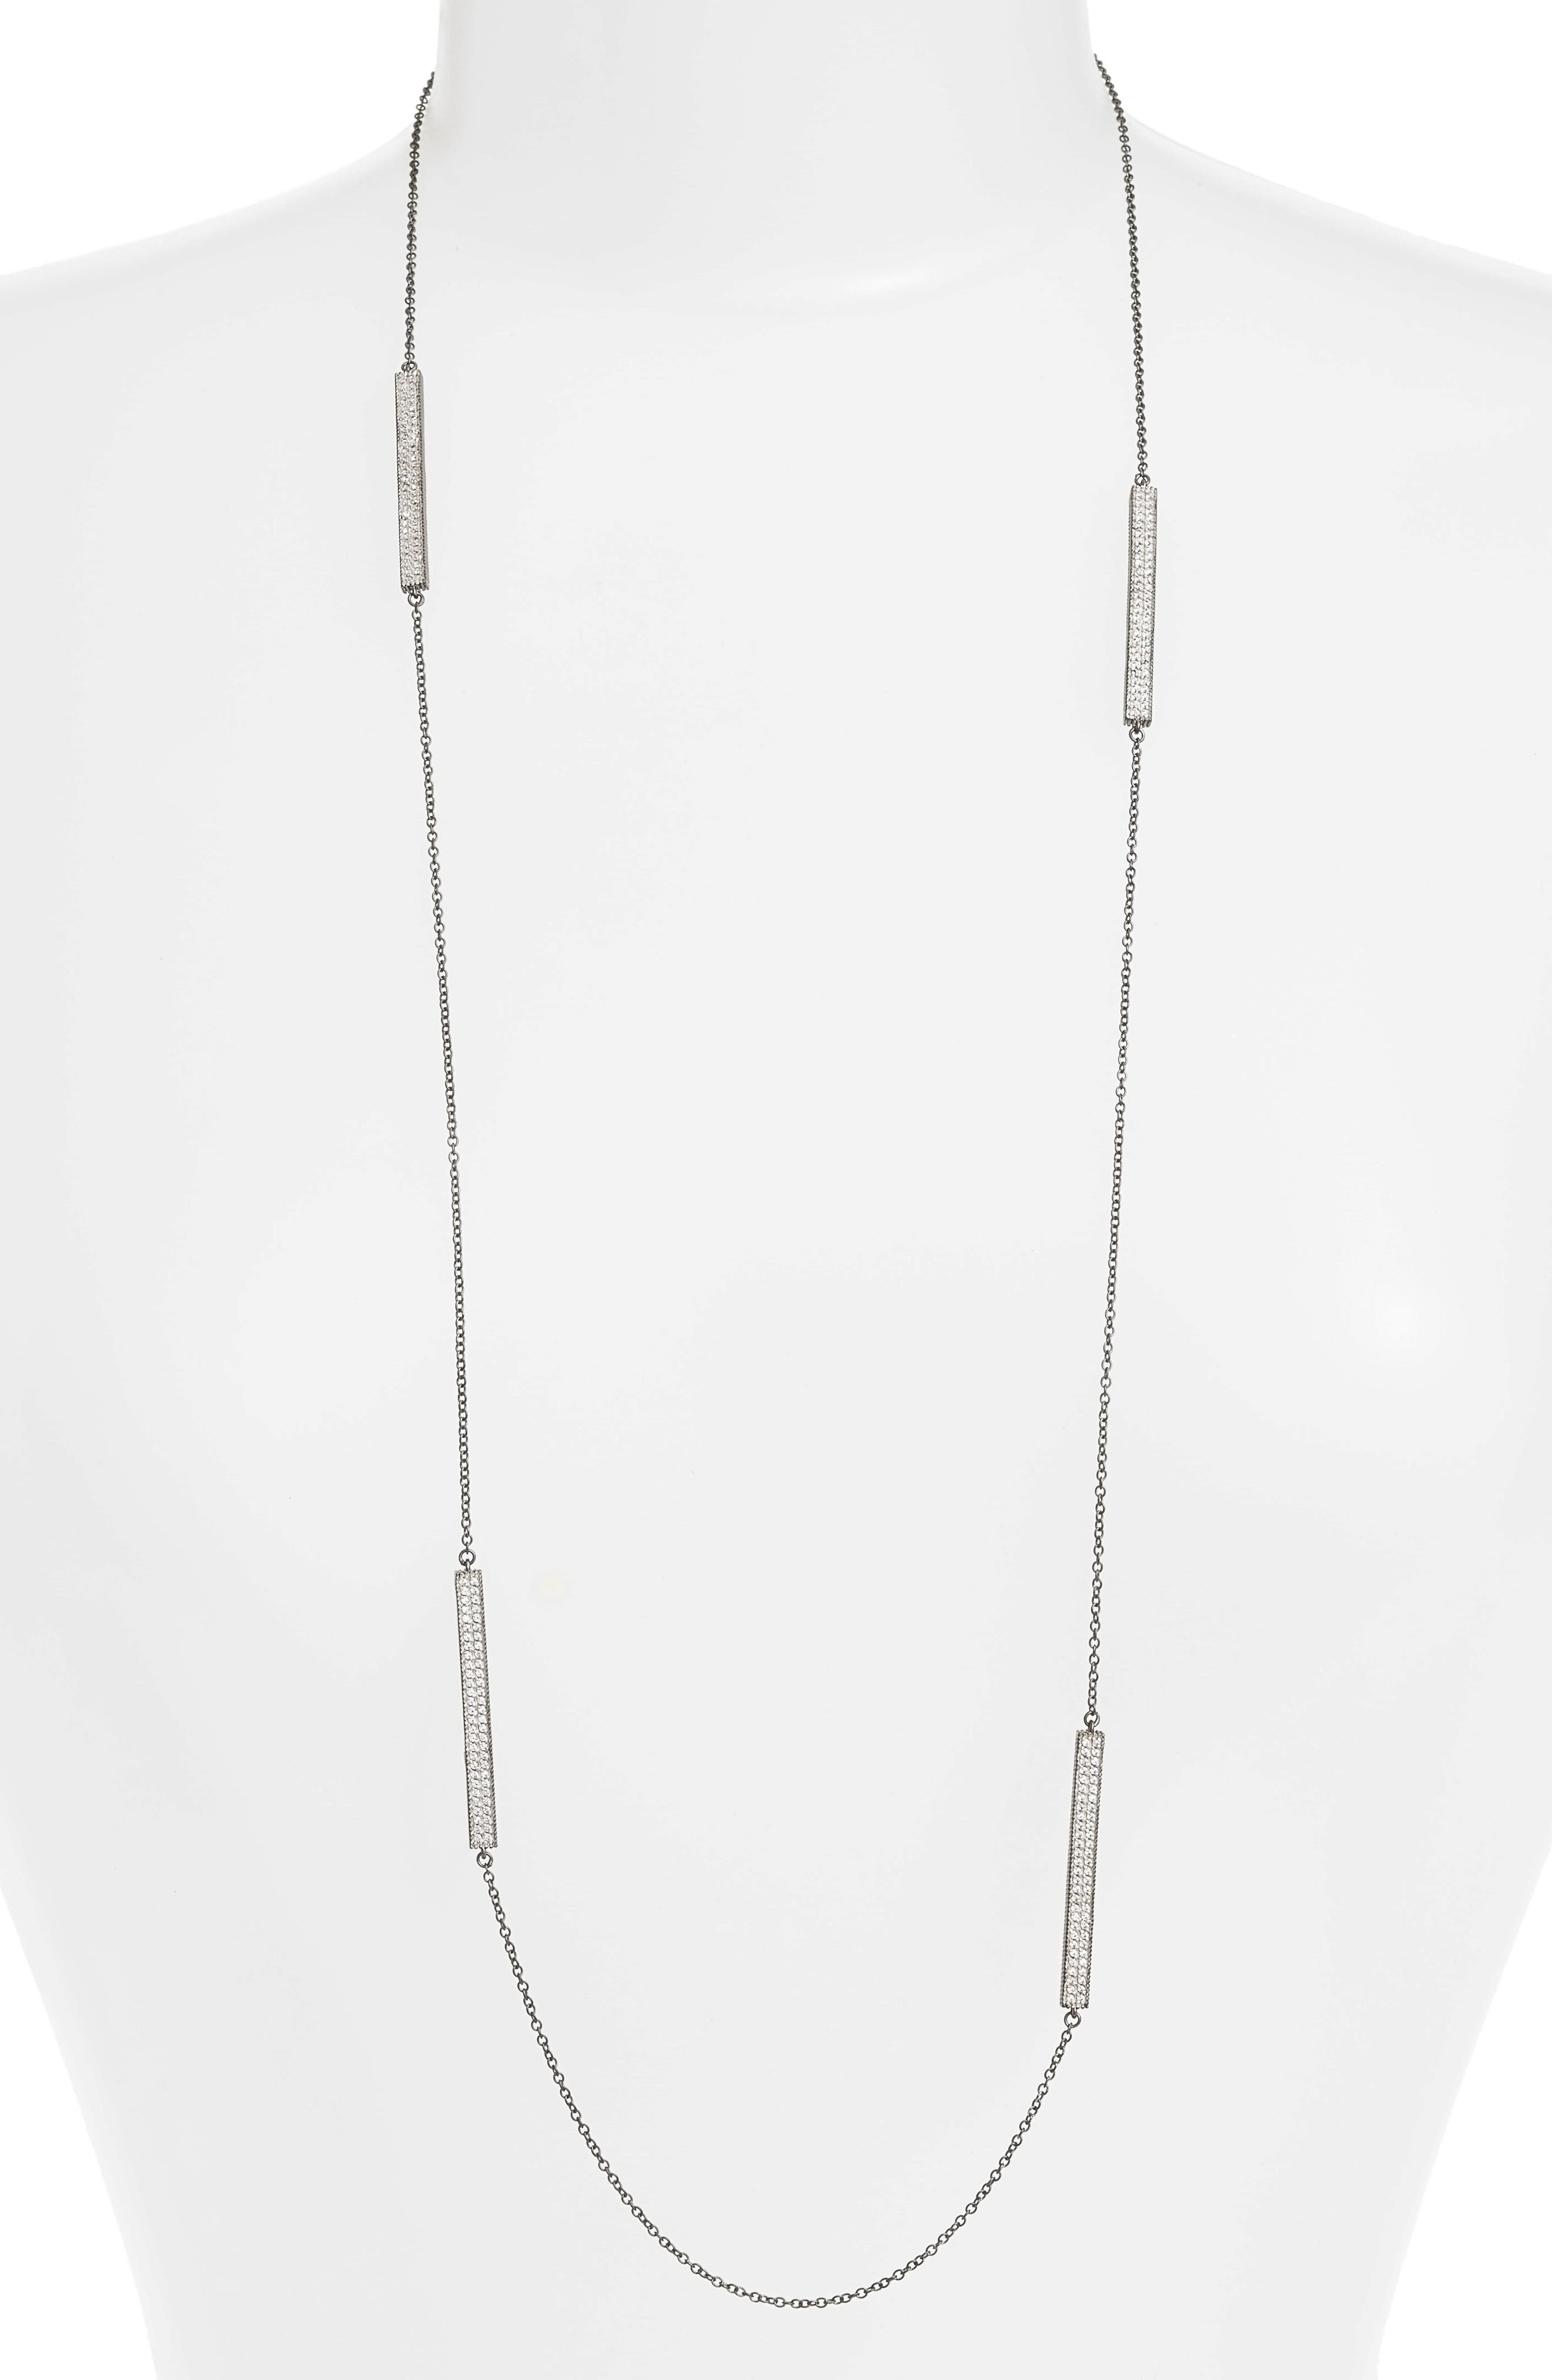 Contemporary Deco Station Necklace,                             Alternate thumbnail 2, color,                             SILVER/ GUNMETAL